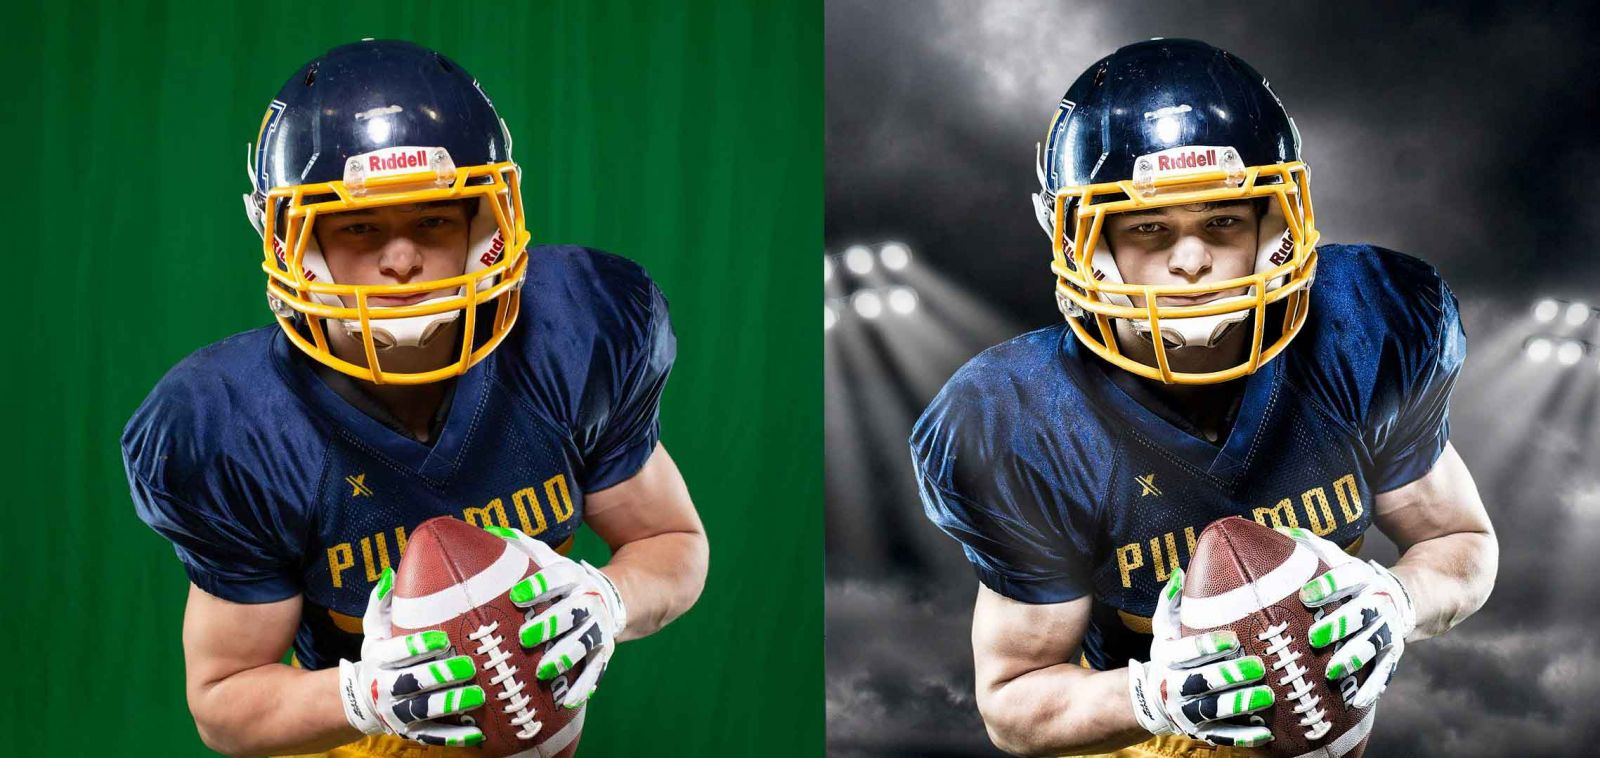 Football player photographed in front of green screen during sport team photography session